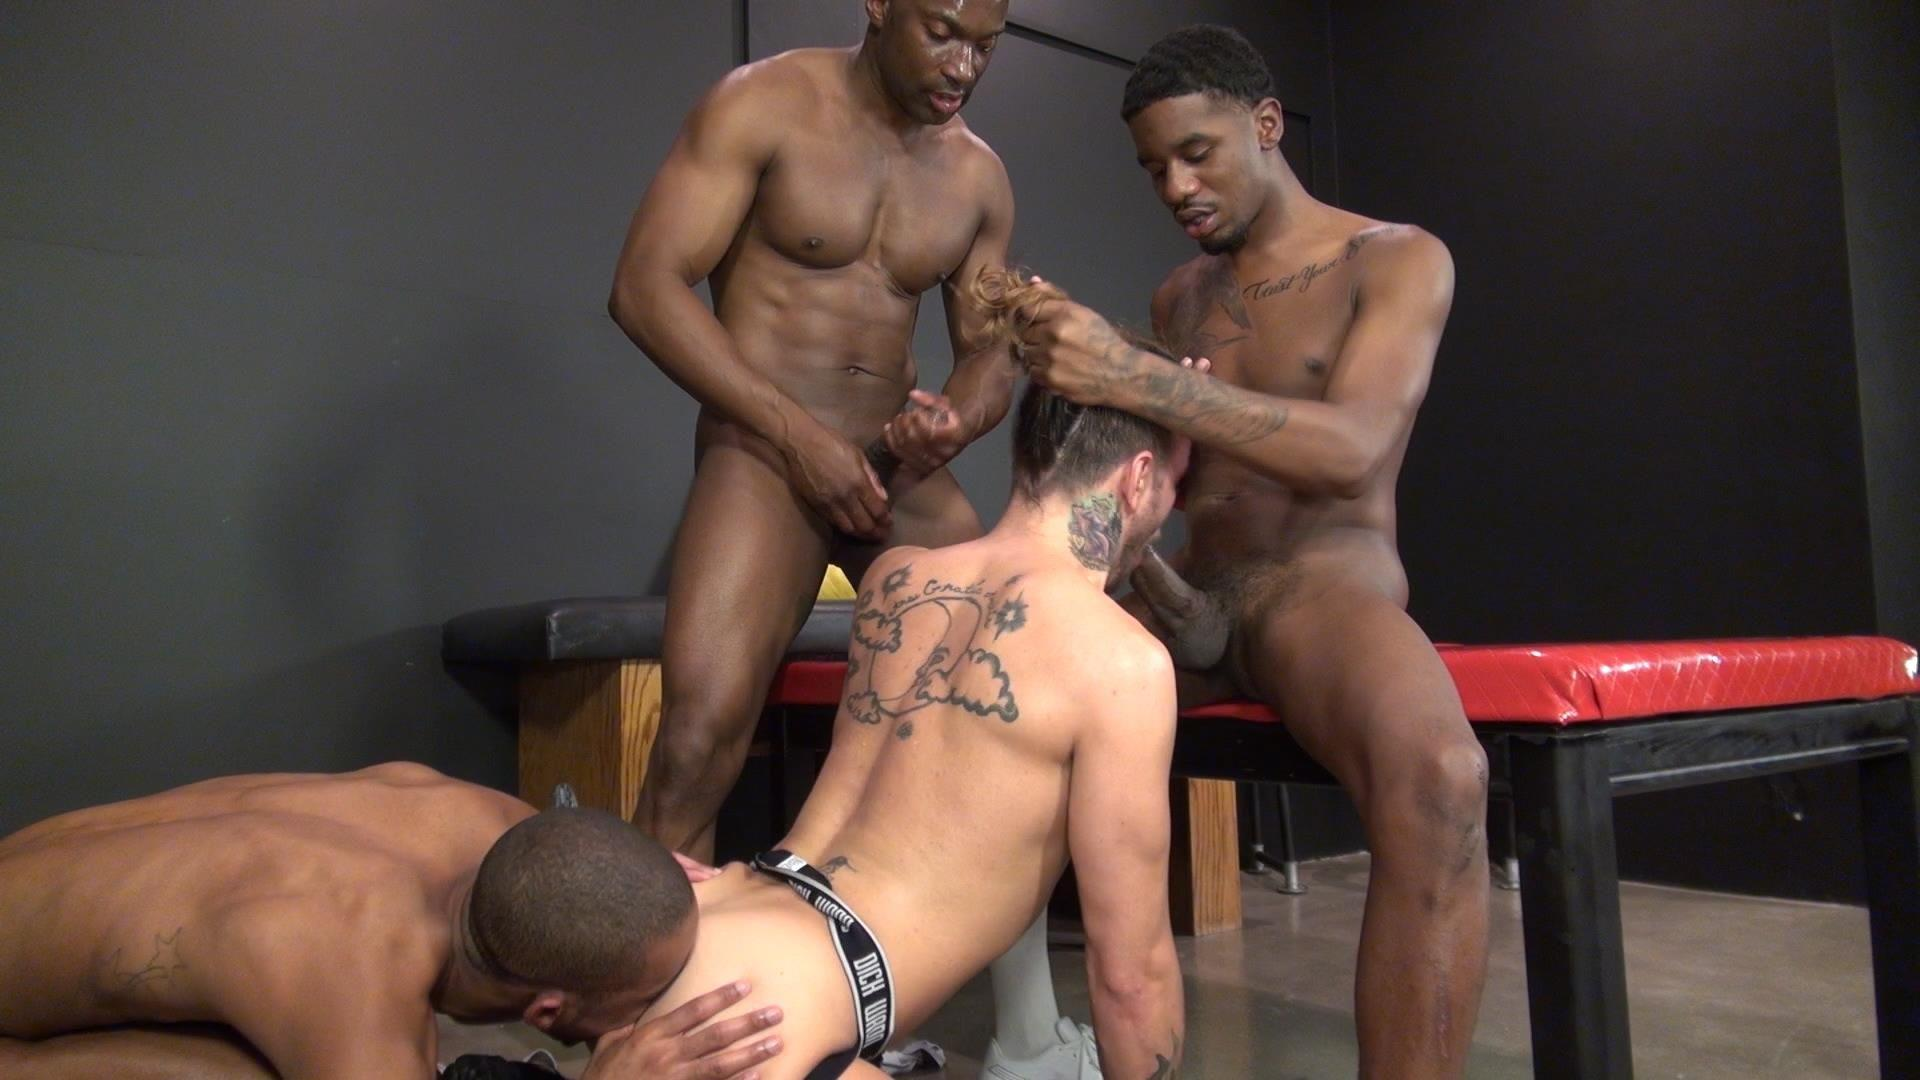 Interracial gay trio sucking jerking off